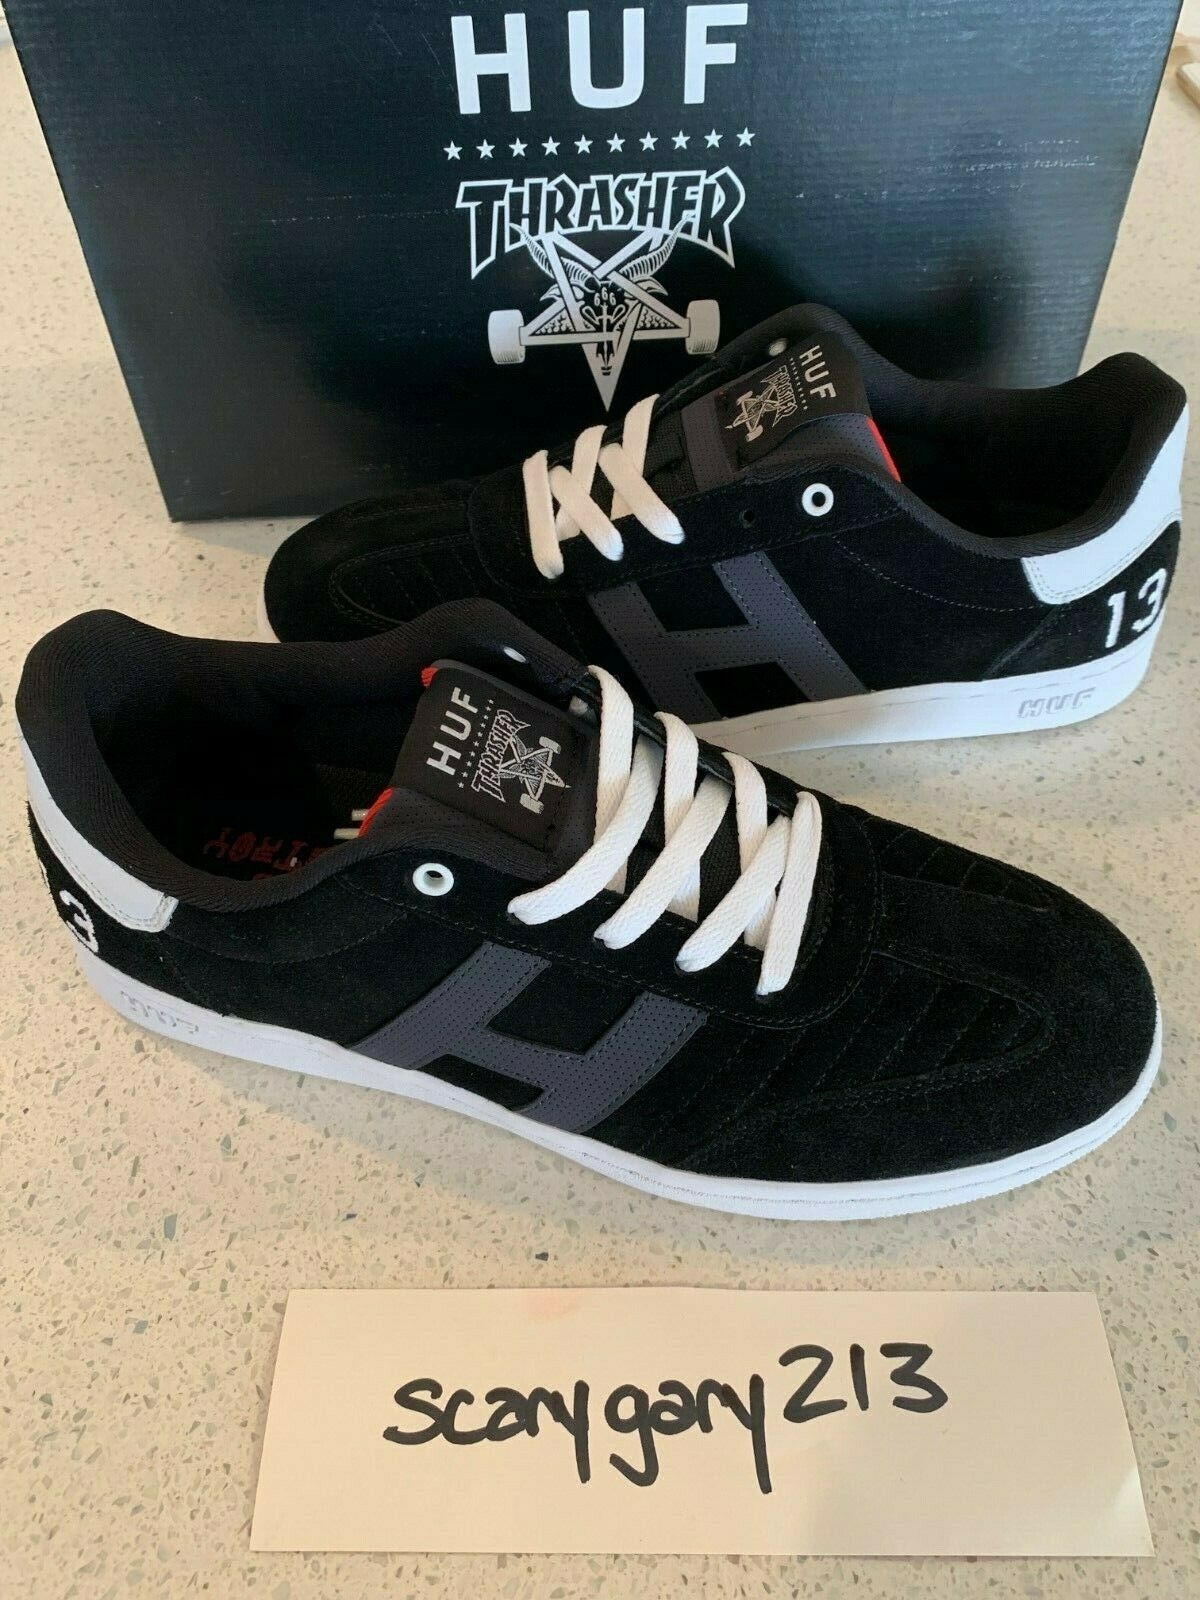 HUF X Thrasher Arena Low sz 12 1st collab 2013